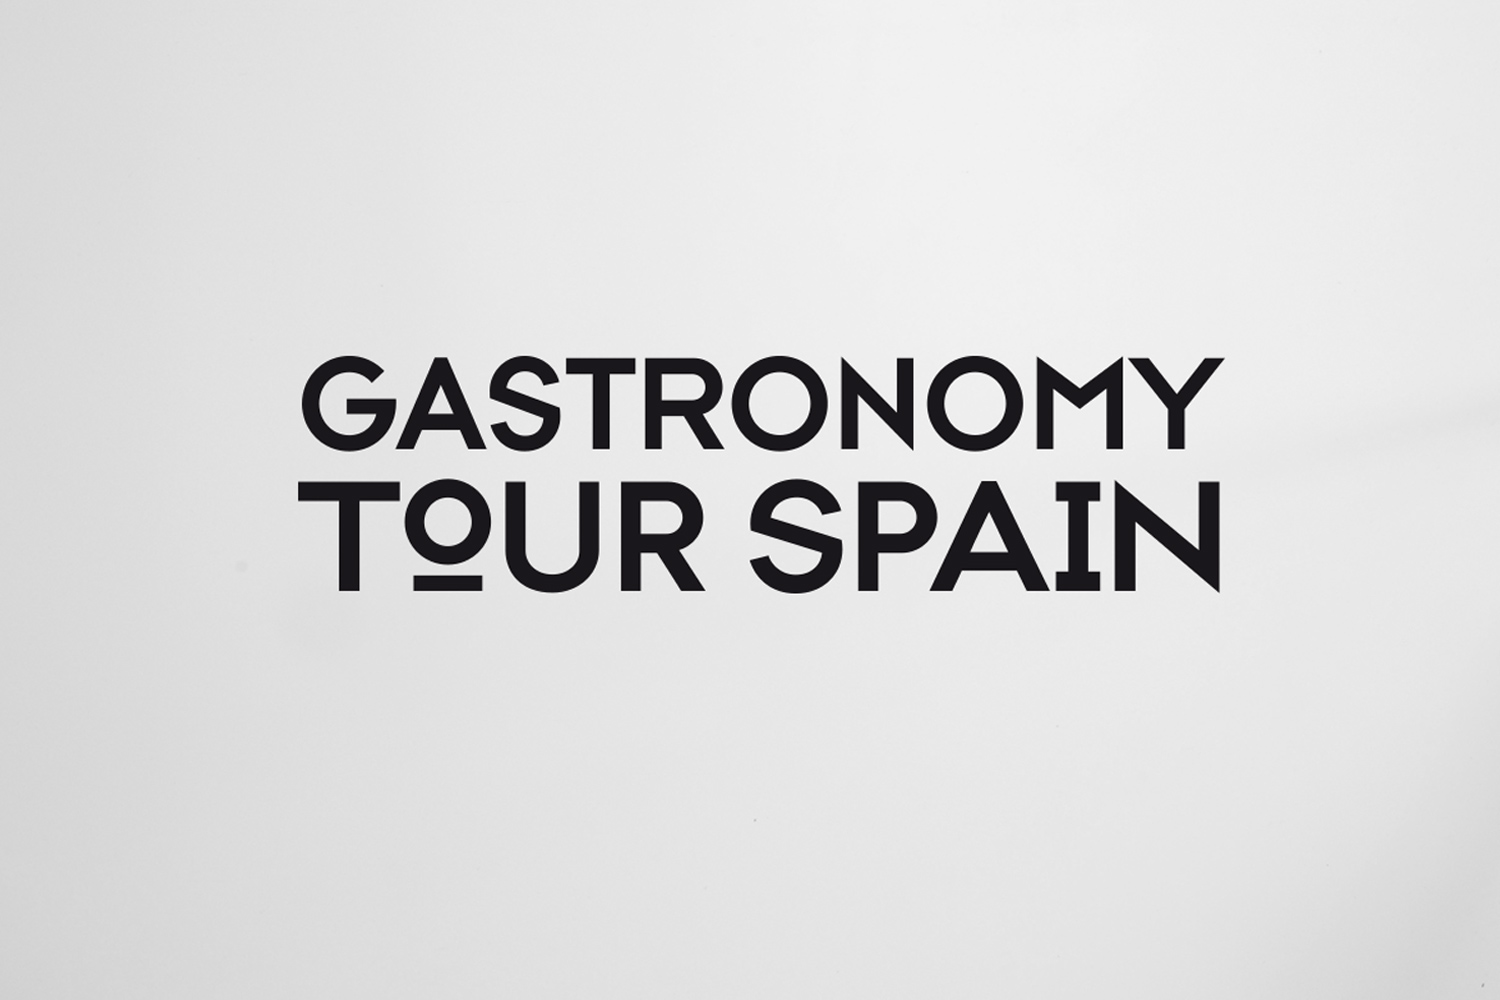 GASTRONOMY TOUR SPAIN UP TO YOU STUDIO ART & CULTURE GRAPHIC DESIGN